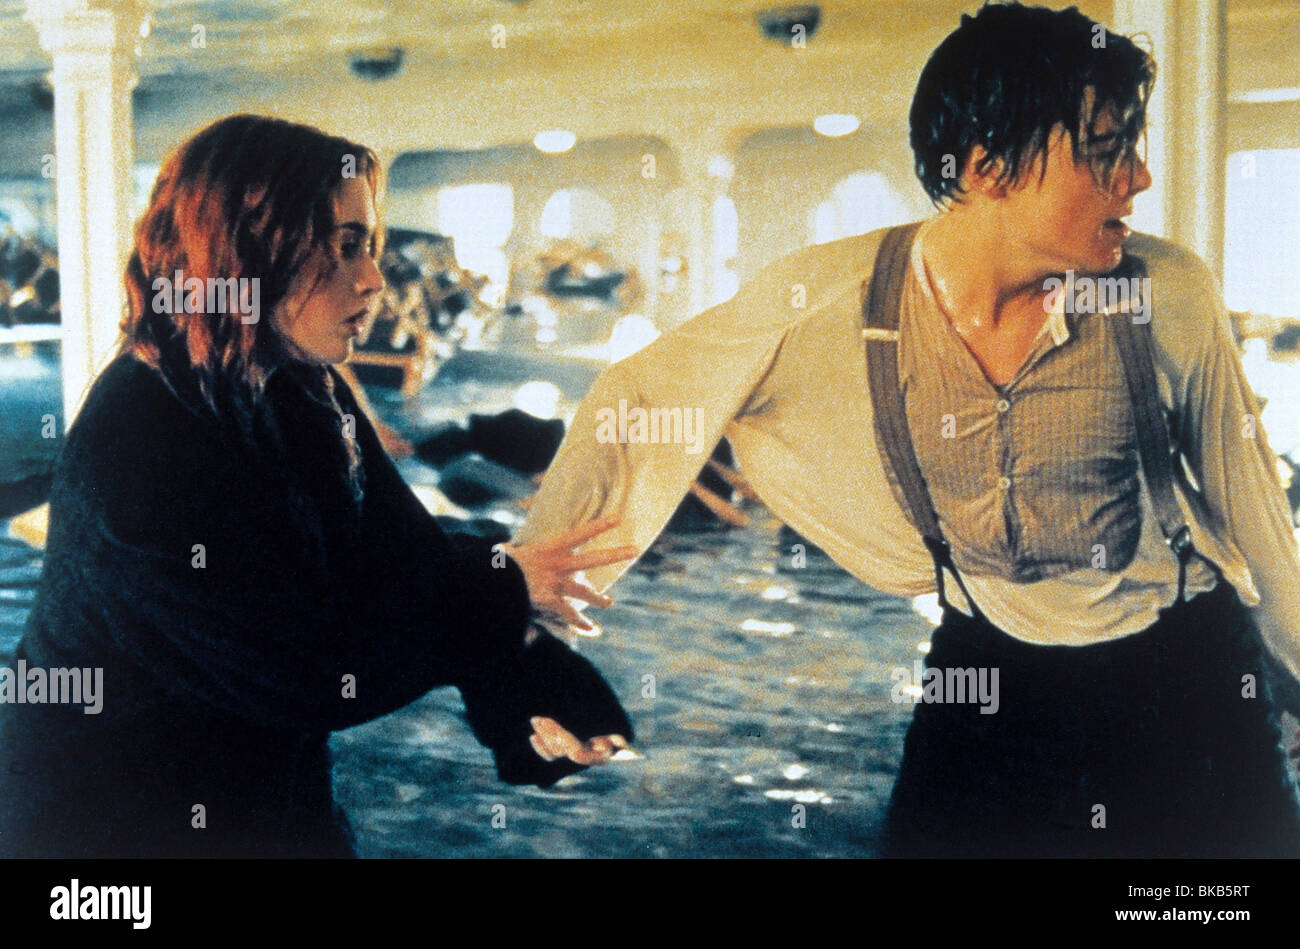 Titanic  Year : 1997  Director : James Cameron Kate Winslet, Leonardo DiCaprio - Stock Image